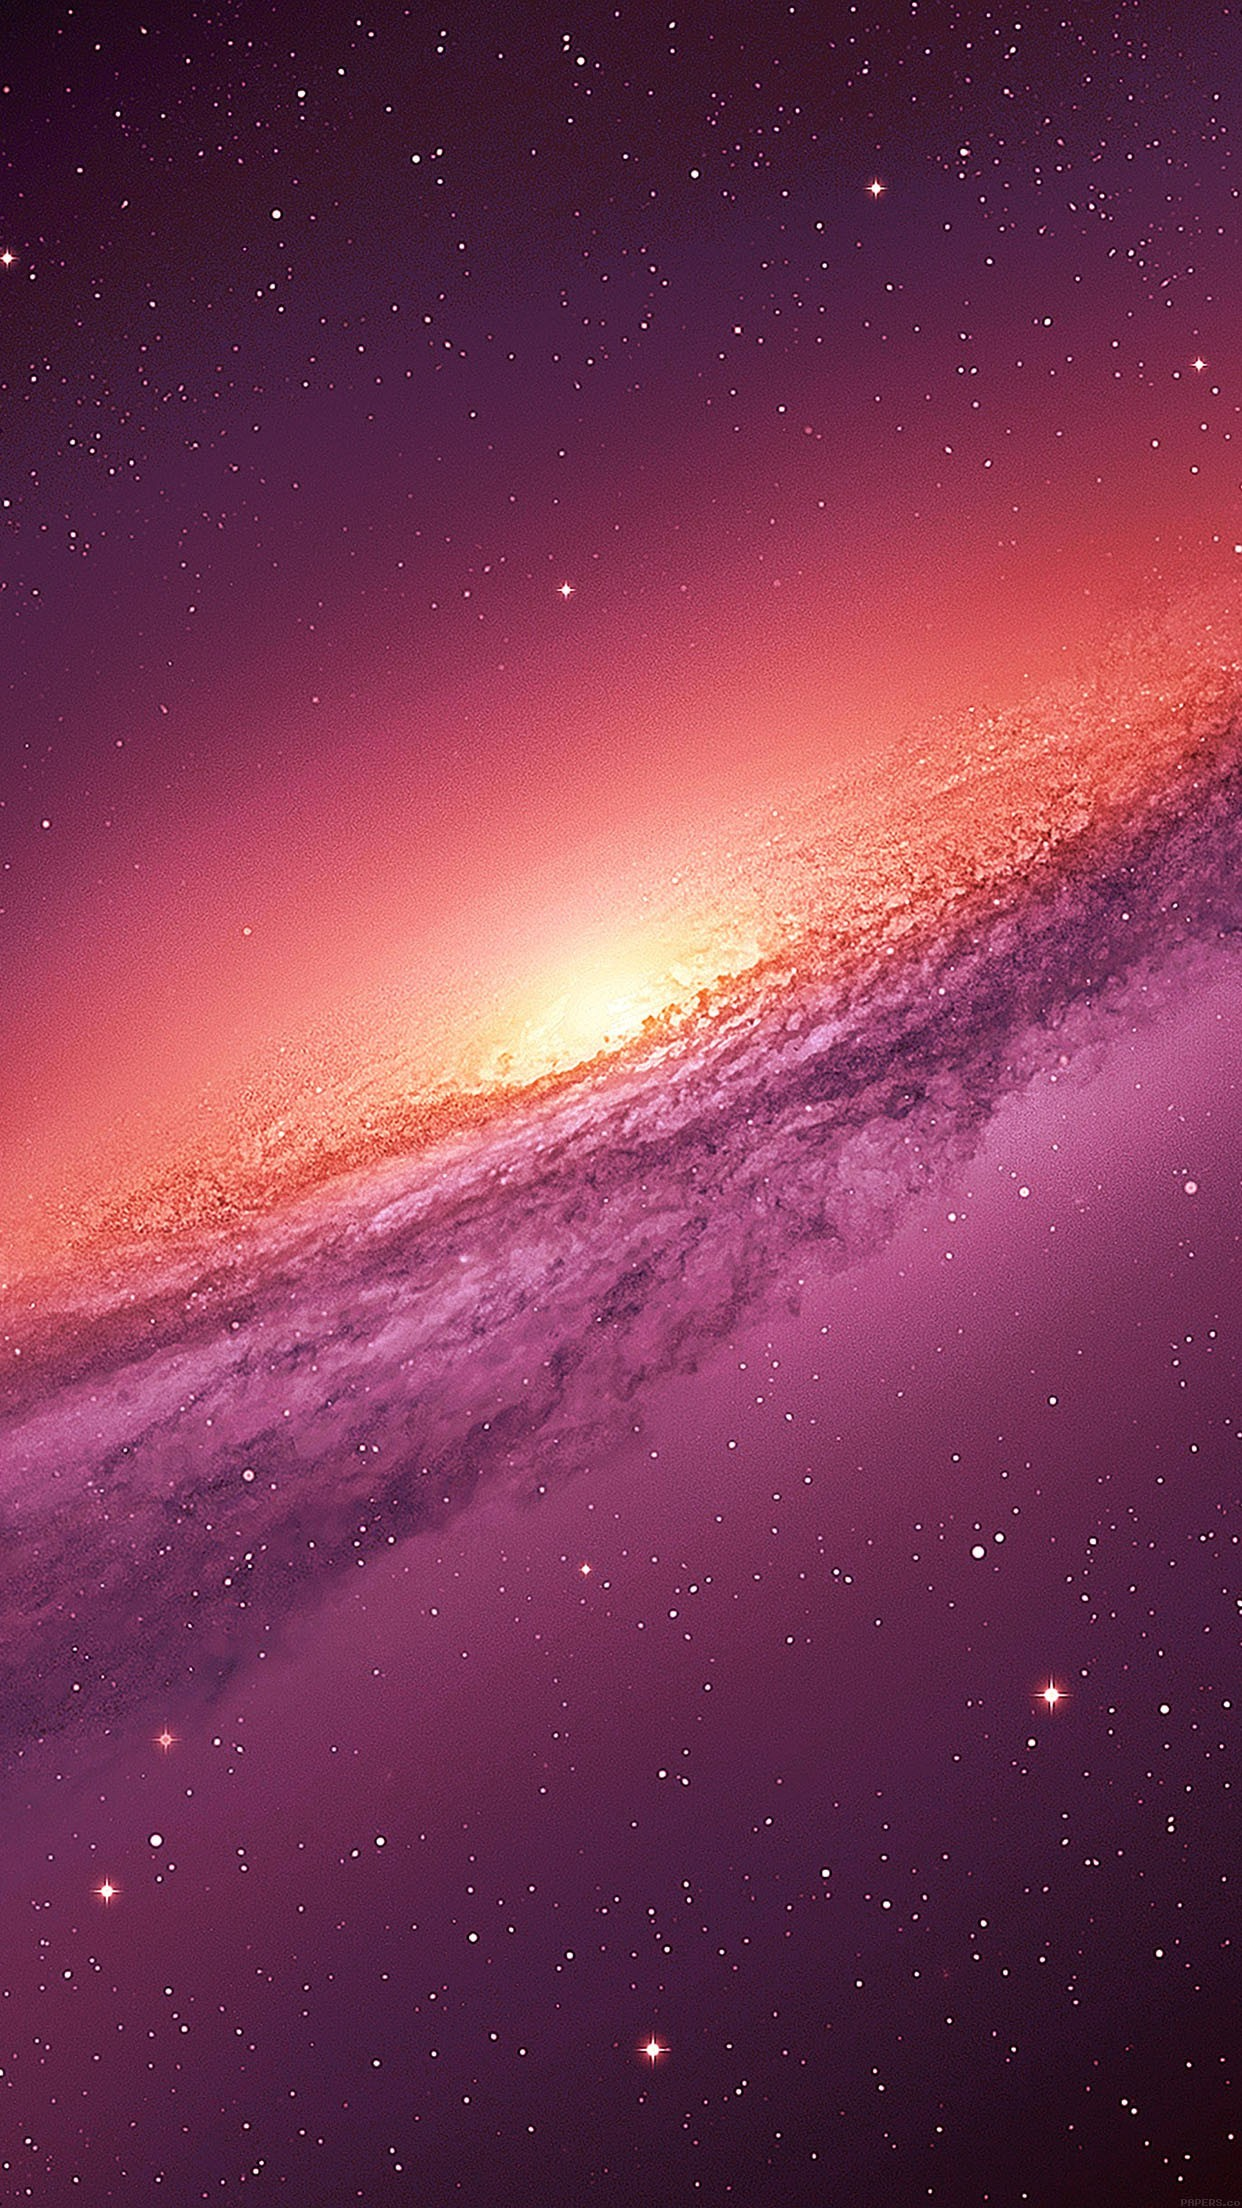 Galaxy Wallpaper For Iphone 6 81 Images